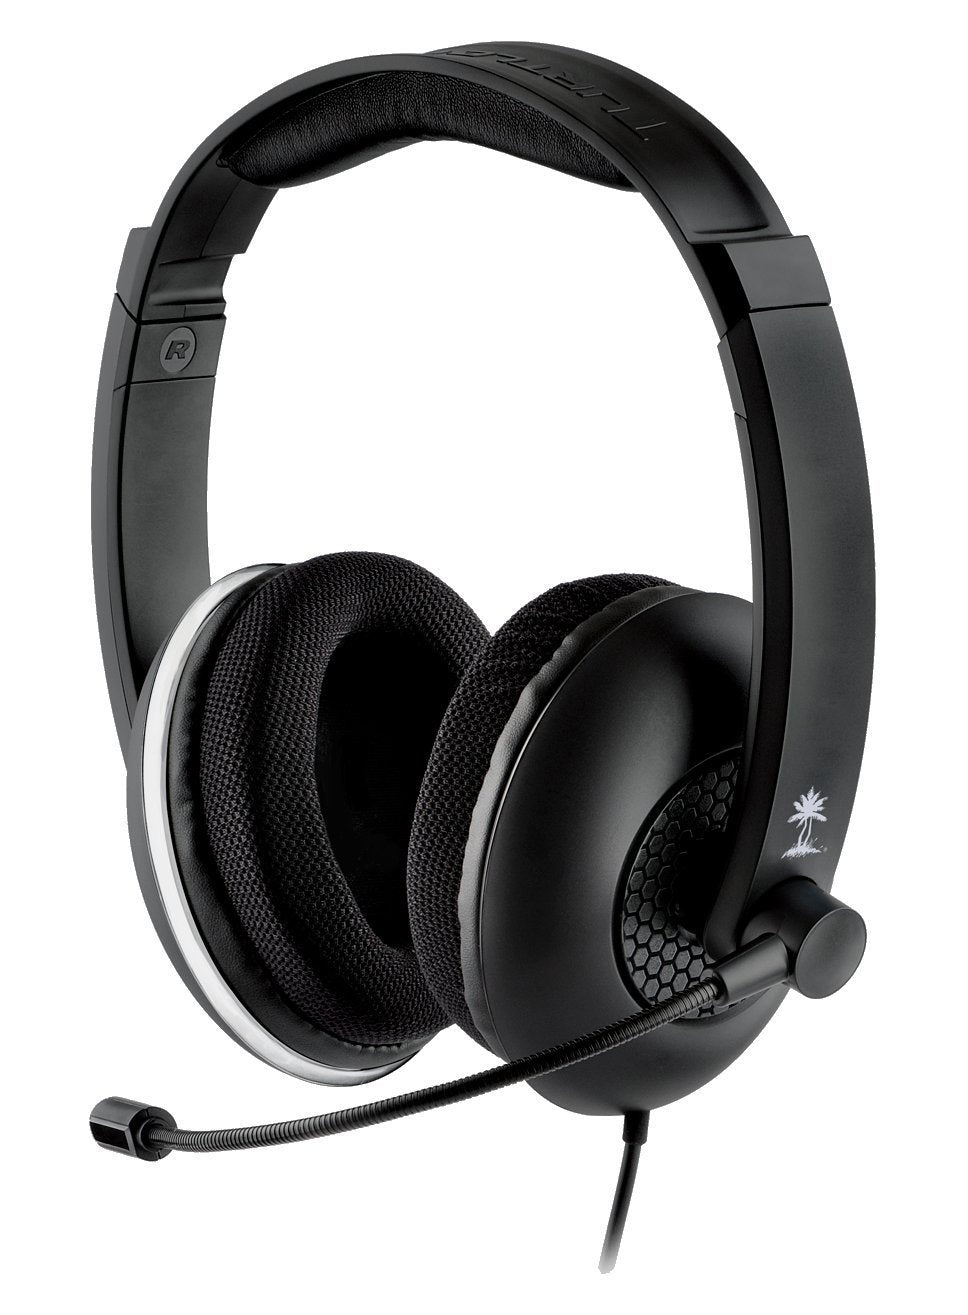 Turtle Beach Ear Force PX11 Wired Gaming Headset for PC/PlayStation/Xbox and more! (Manufacturer Refurbished) - Use code PX11 for additional $10 off!